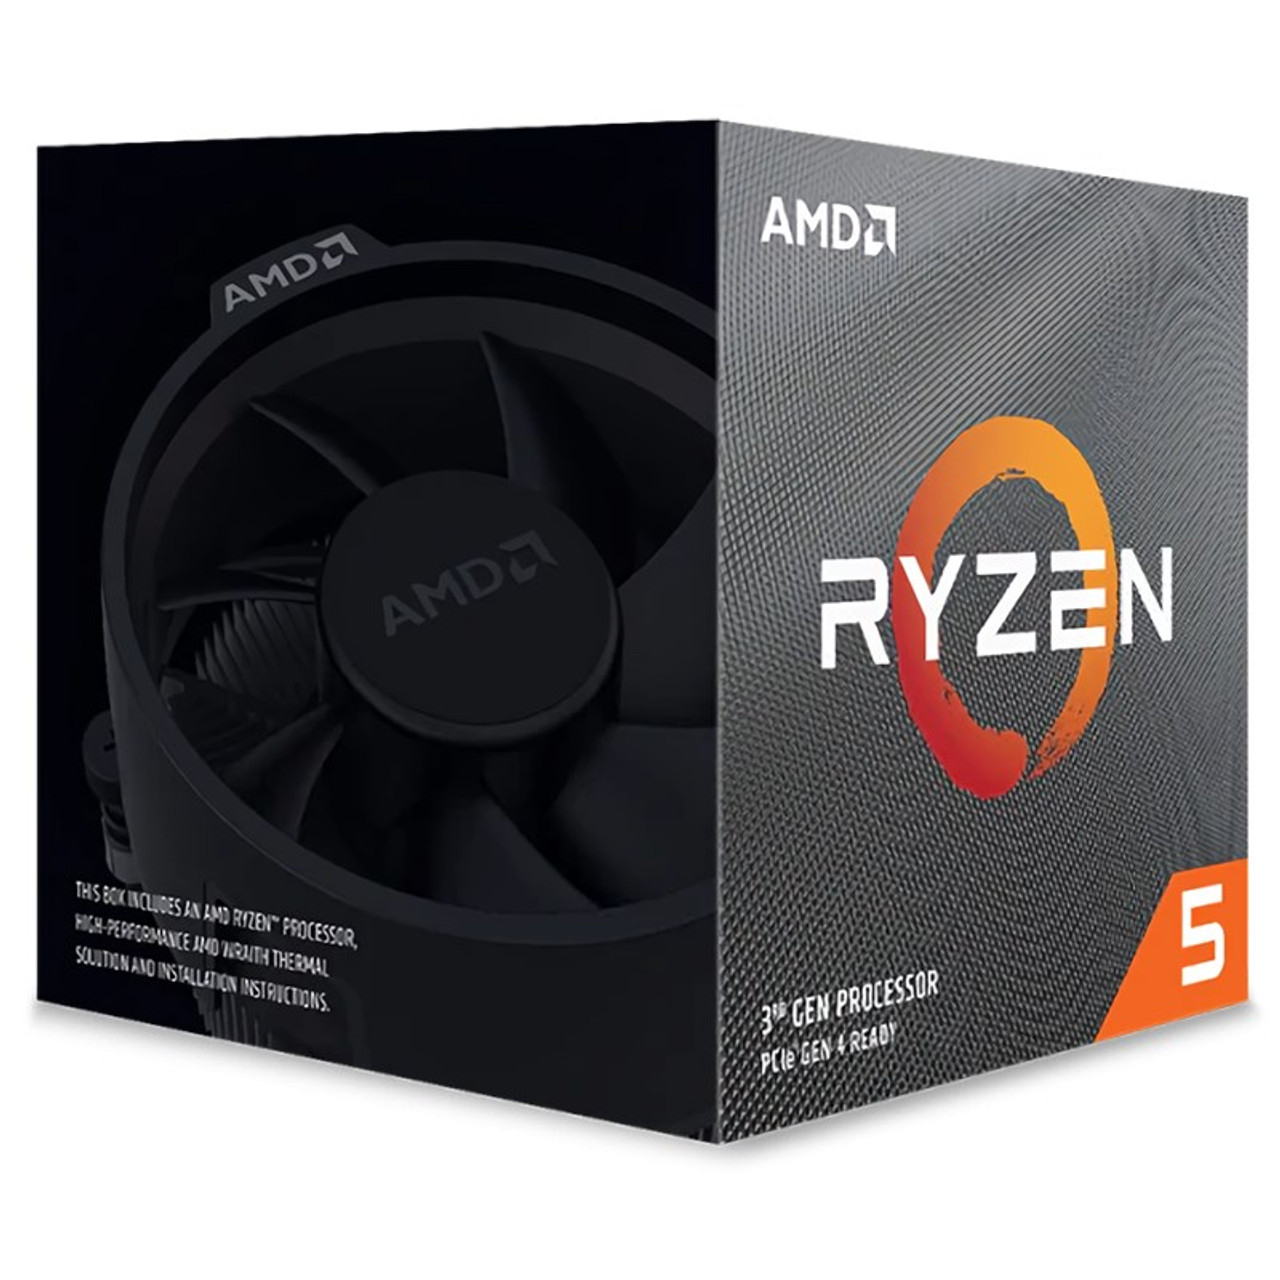 Image for AMD Ryzen 5 3600XT 6 Core Socket AM4 3.80GHz CPU Processor + Wraith Spire Cooler CX Computer Superstore